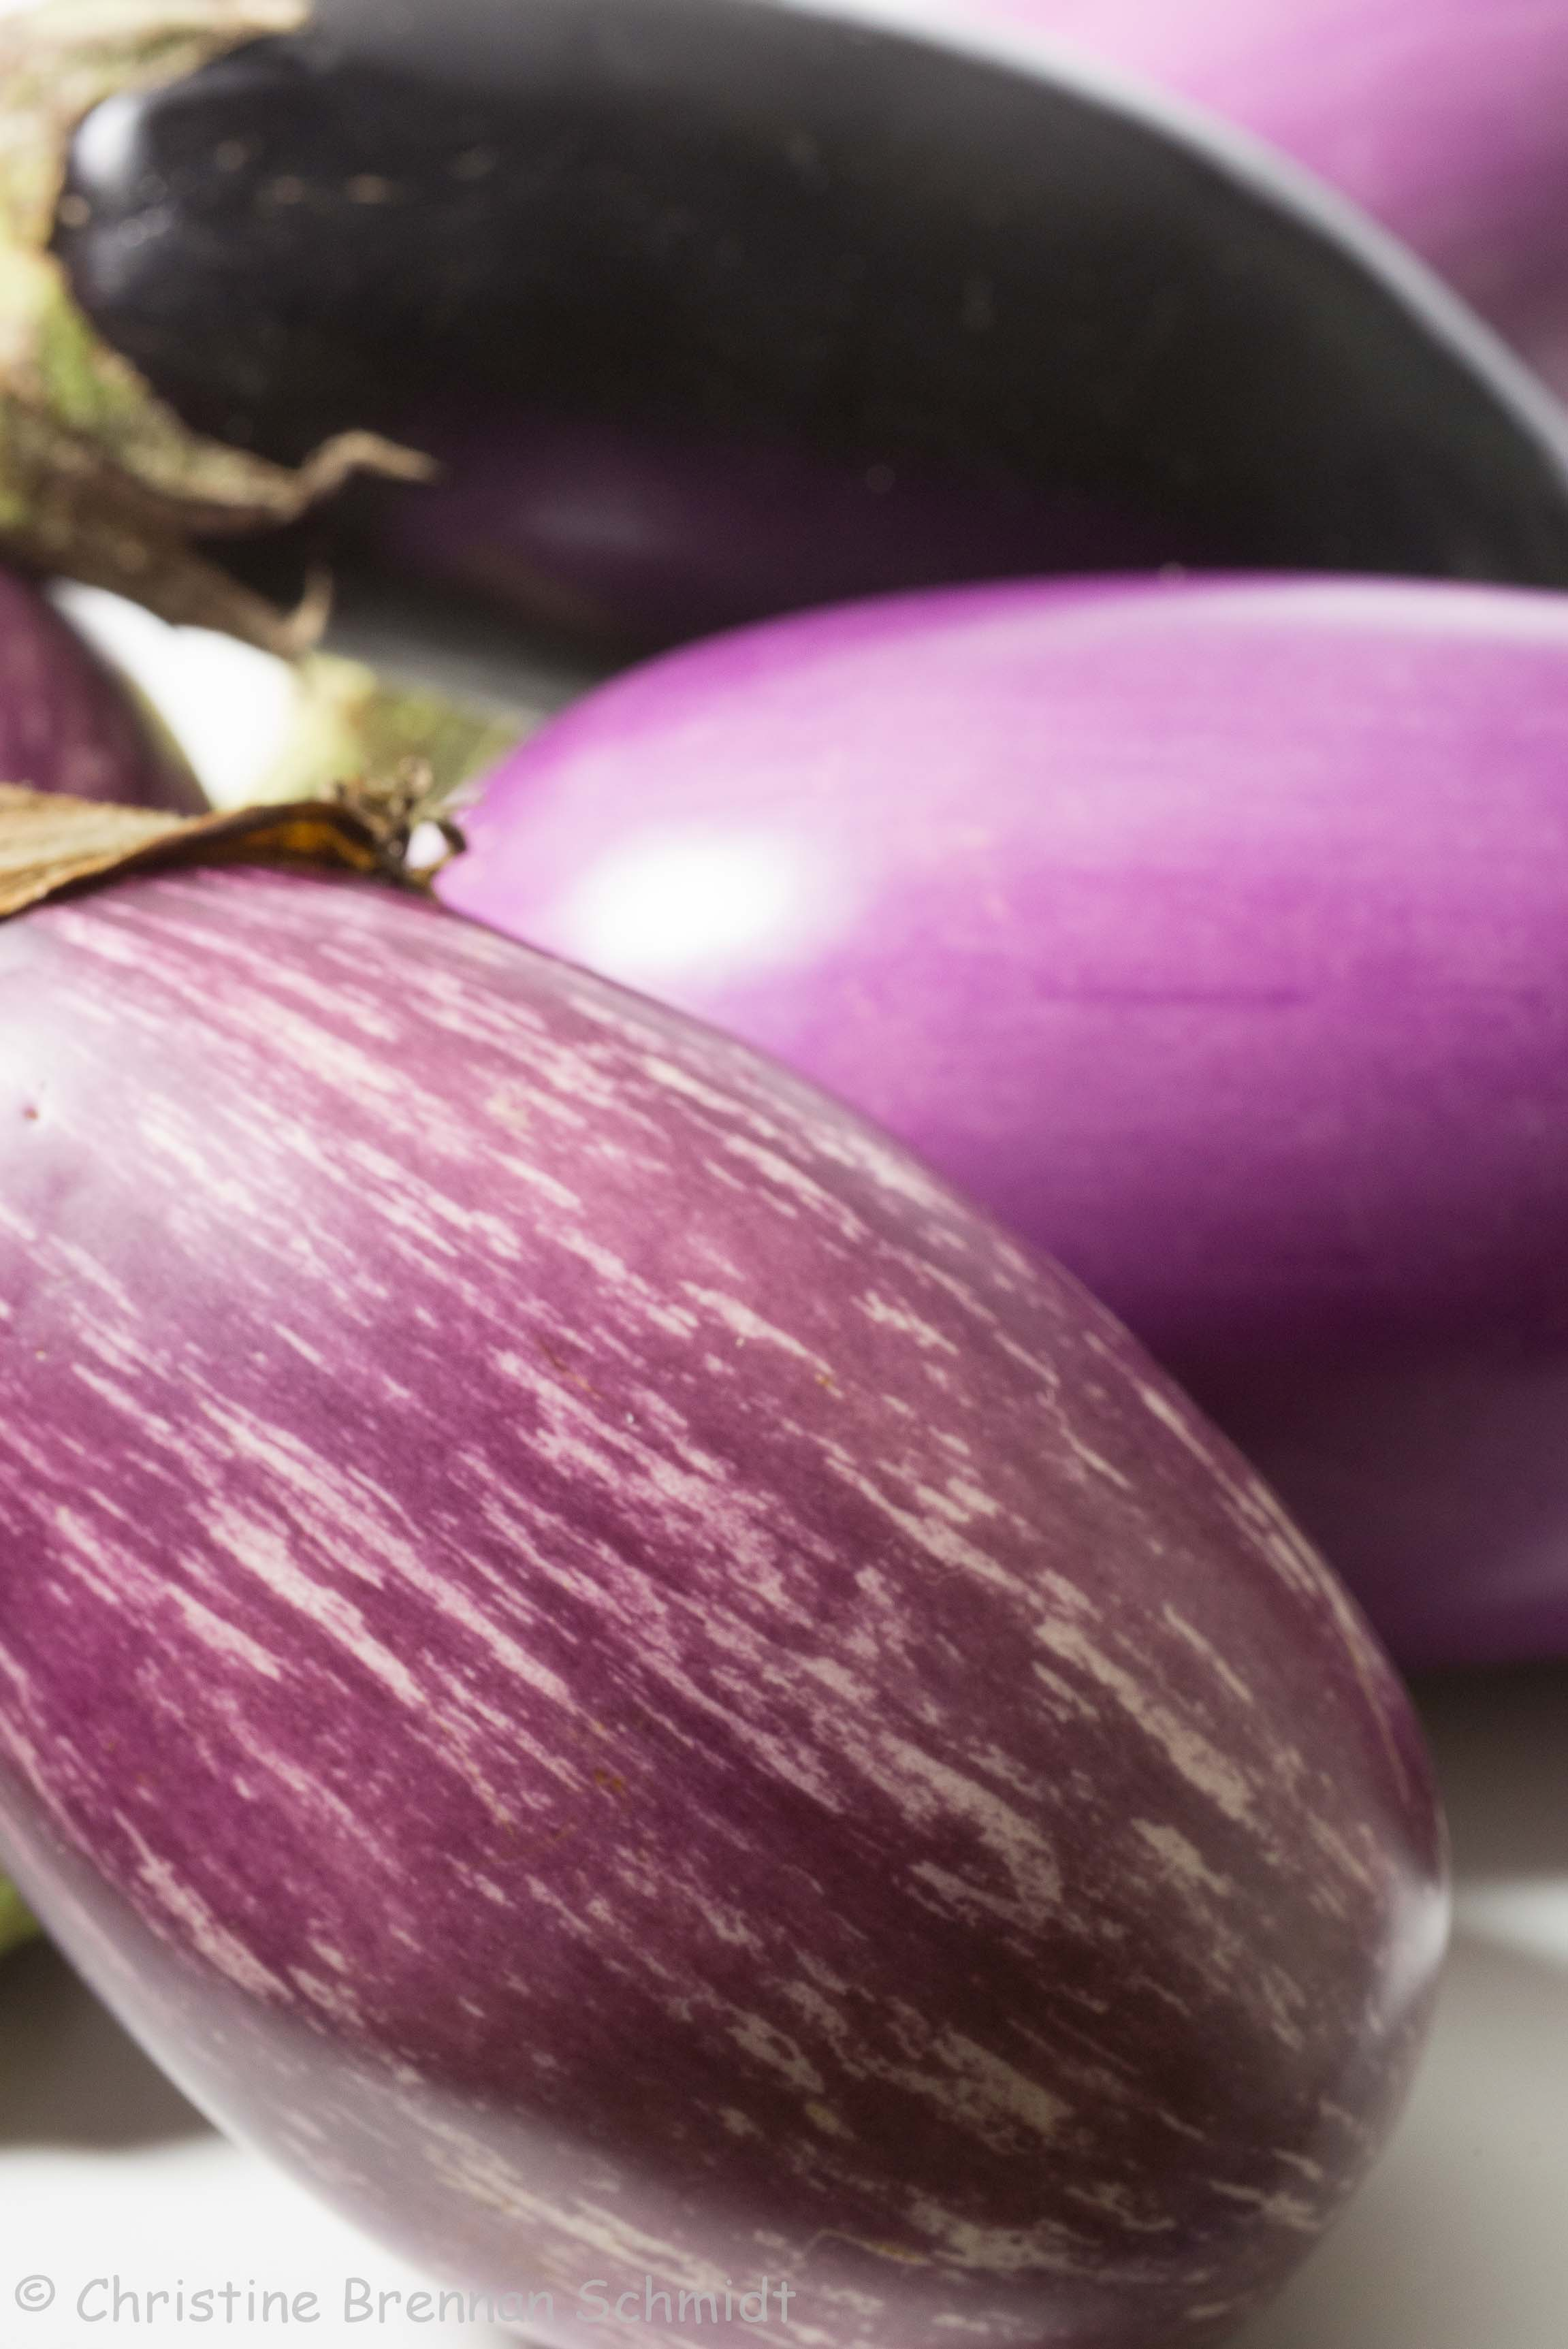 purplefruit-5998.jpg